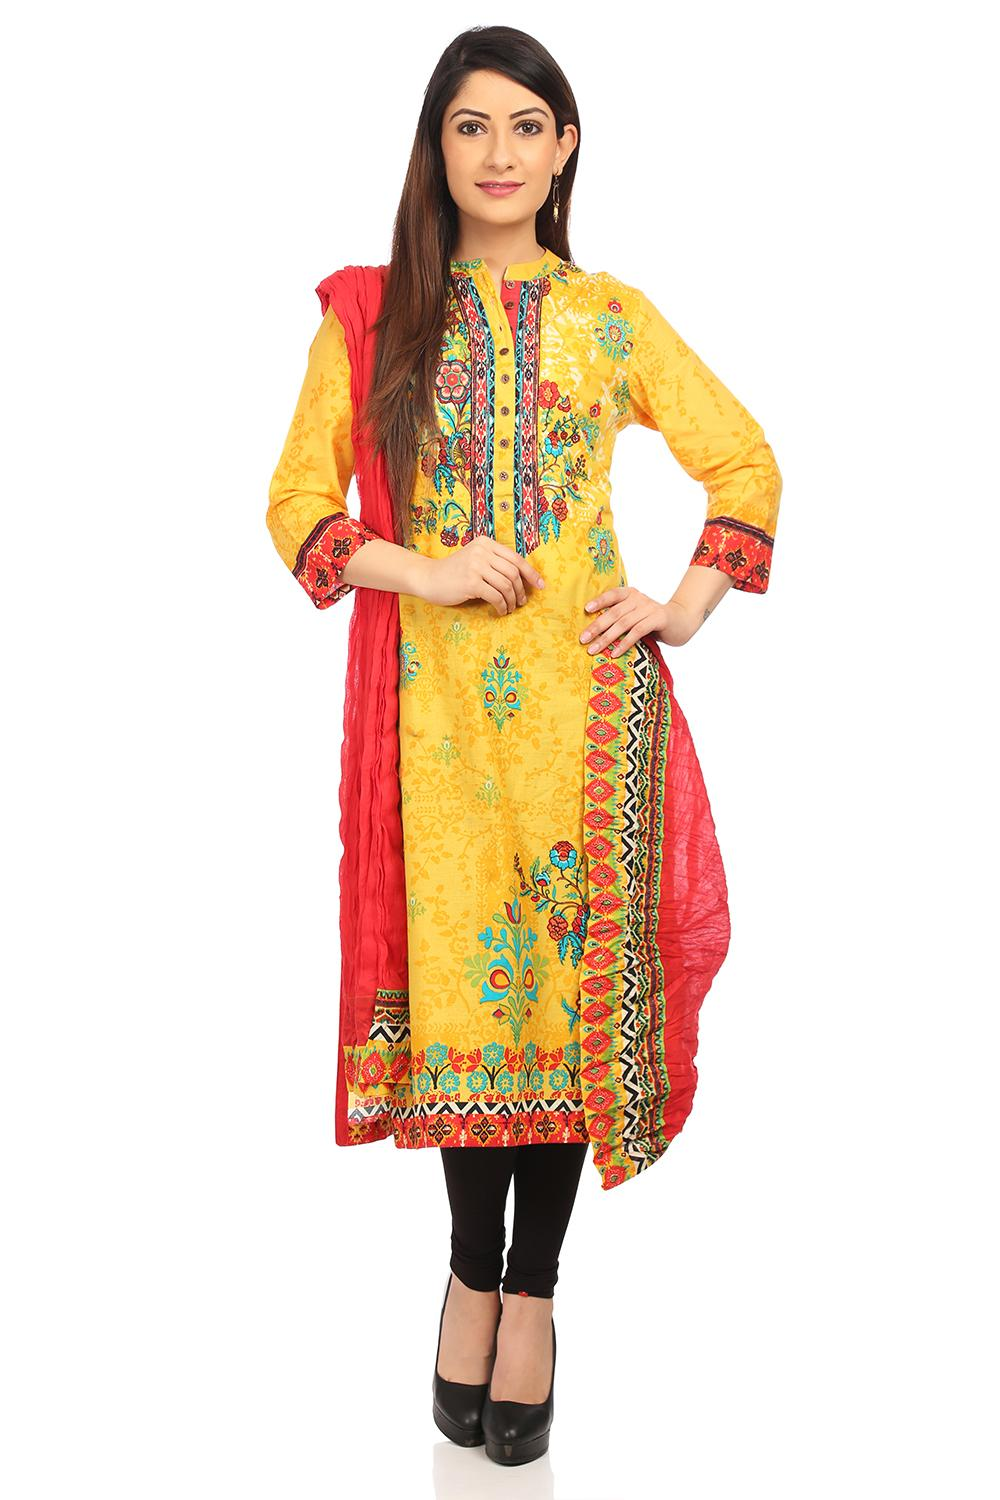 Red Cotton Dupatta - AJMAN13870SS18RED